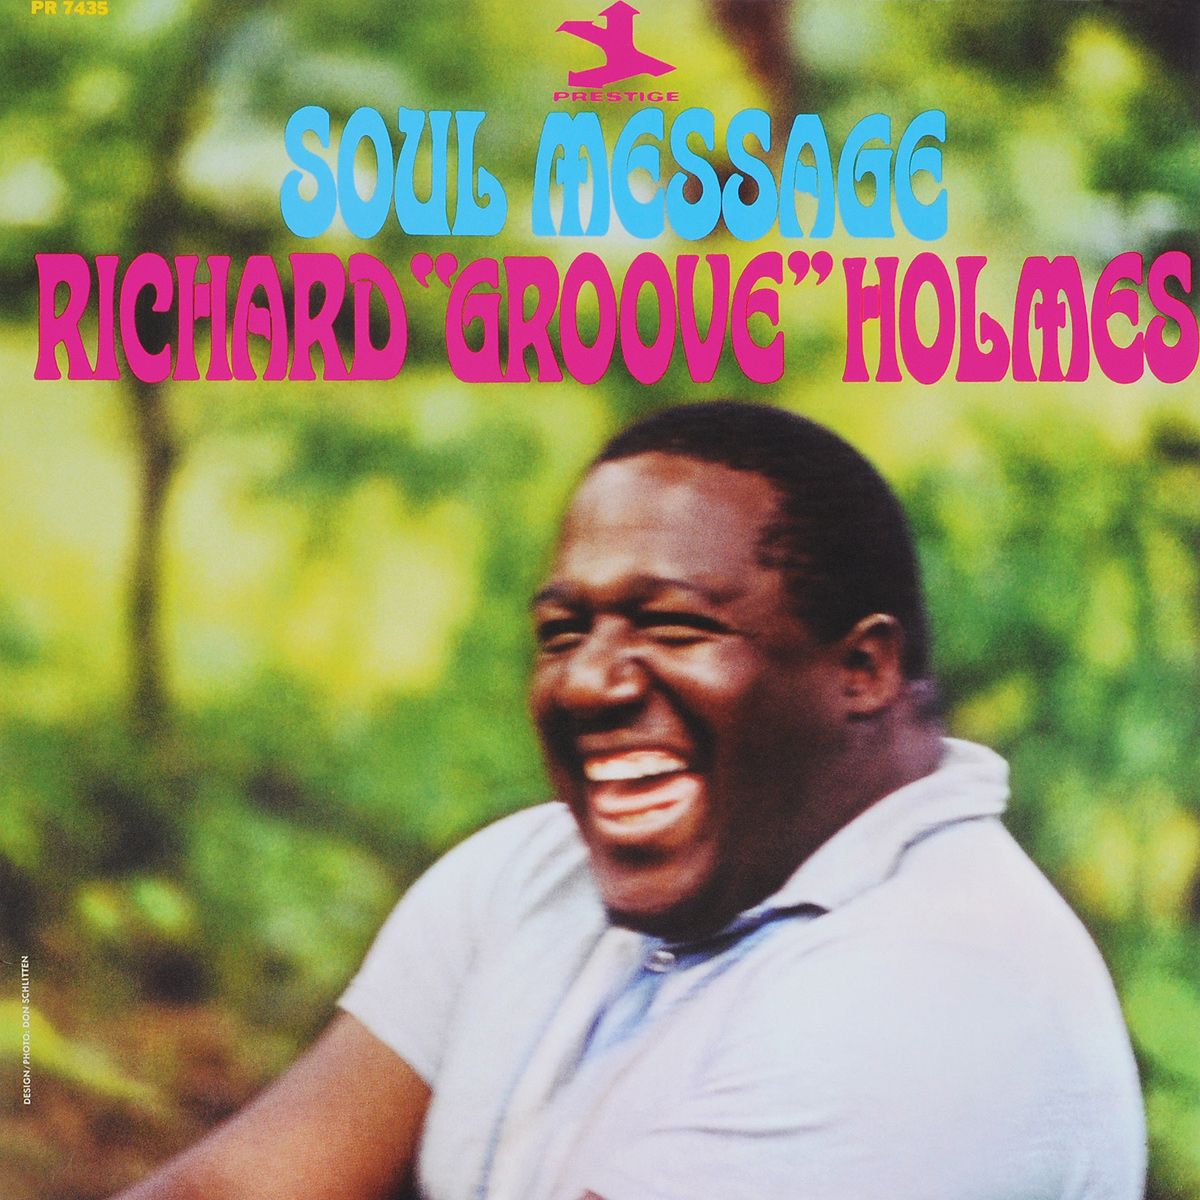 цена на Ричард Грув Холмс Richard Groove Holmes. Soul Message (LP)